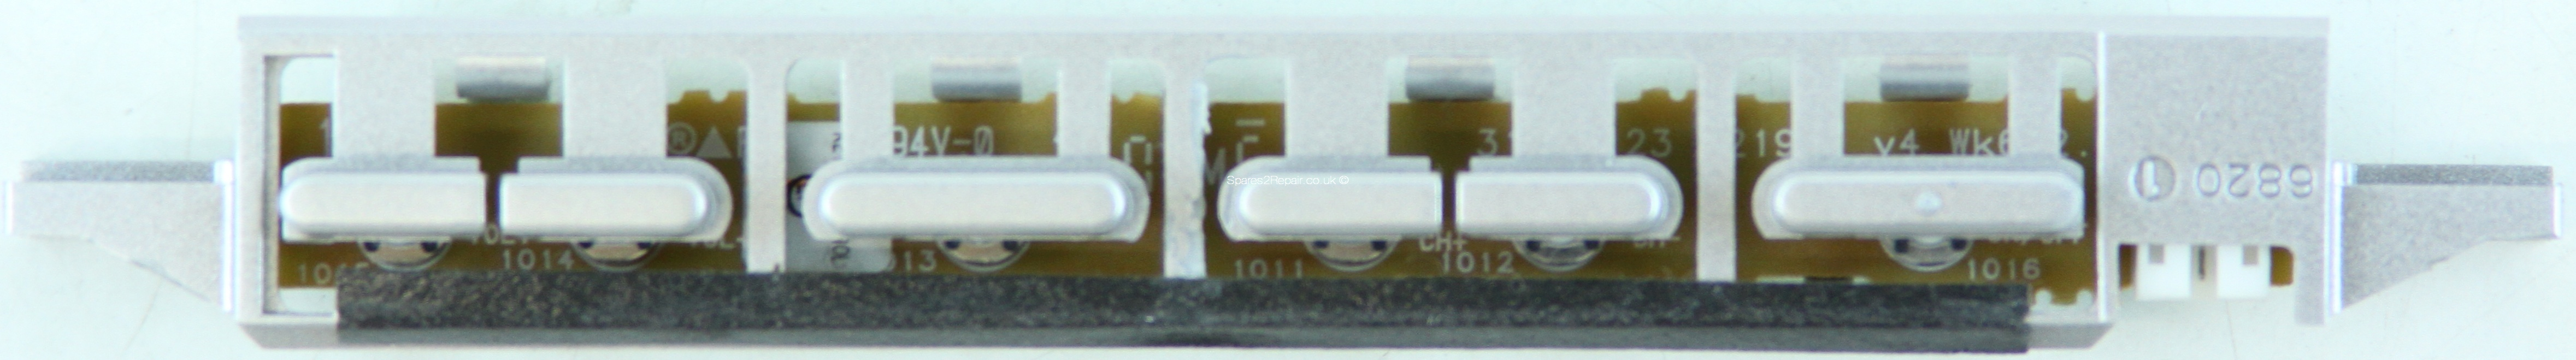 Philips 32PFL7562D/10 - Buttons - 3139-123-6219.1 v4 - wK642.3